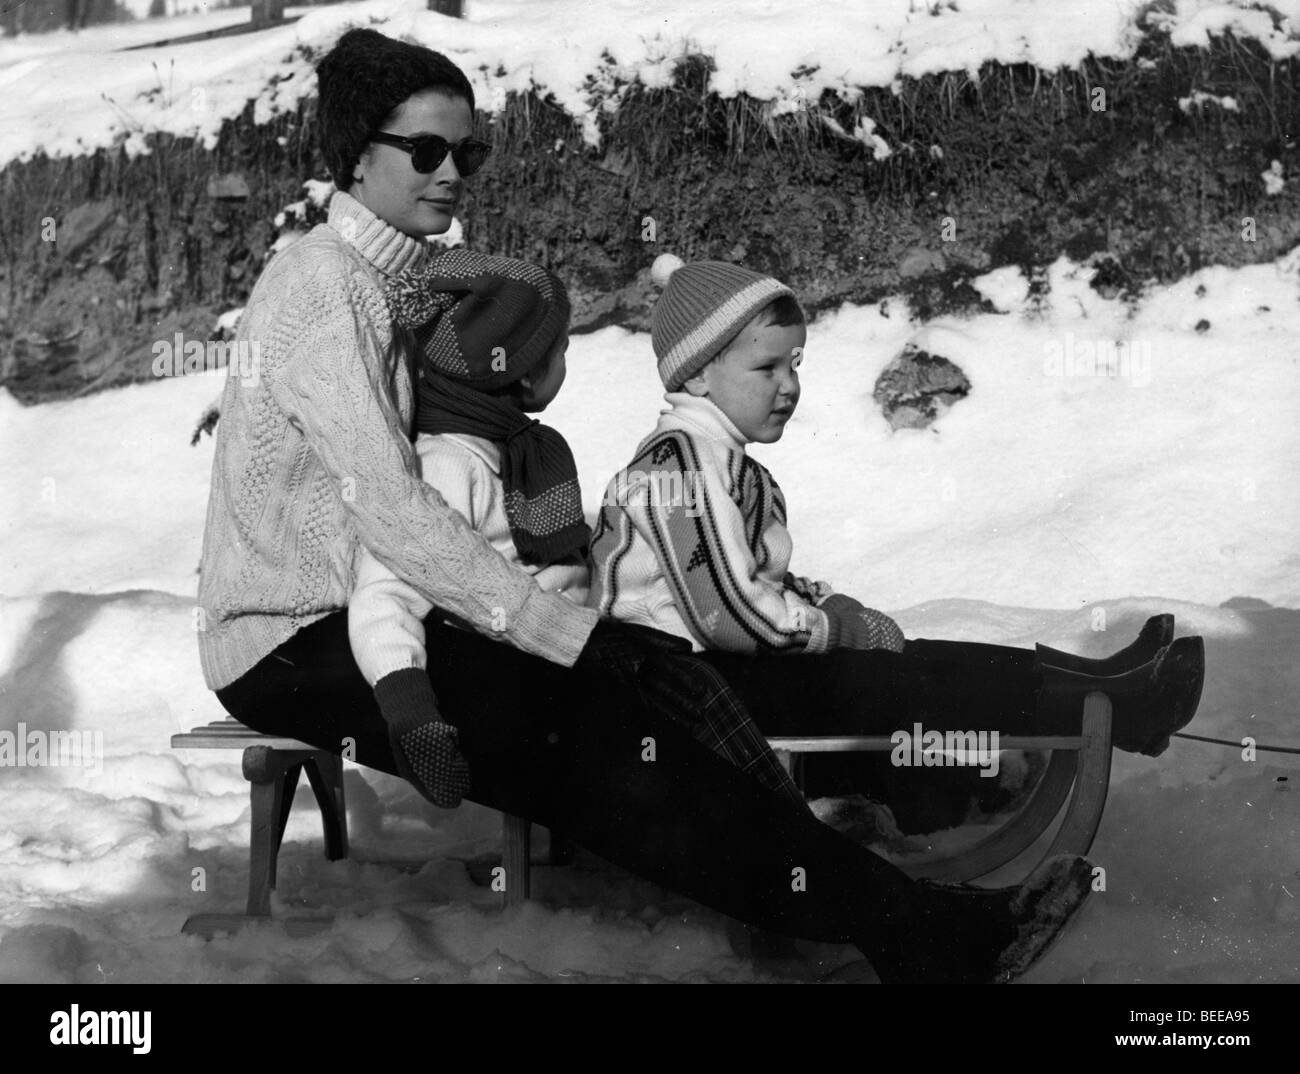 Grace Kelly sledding with her two youngest children, Albert and Stephanie. Stock Photo